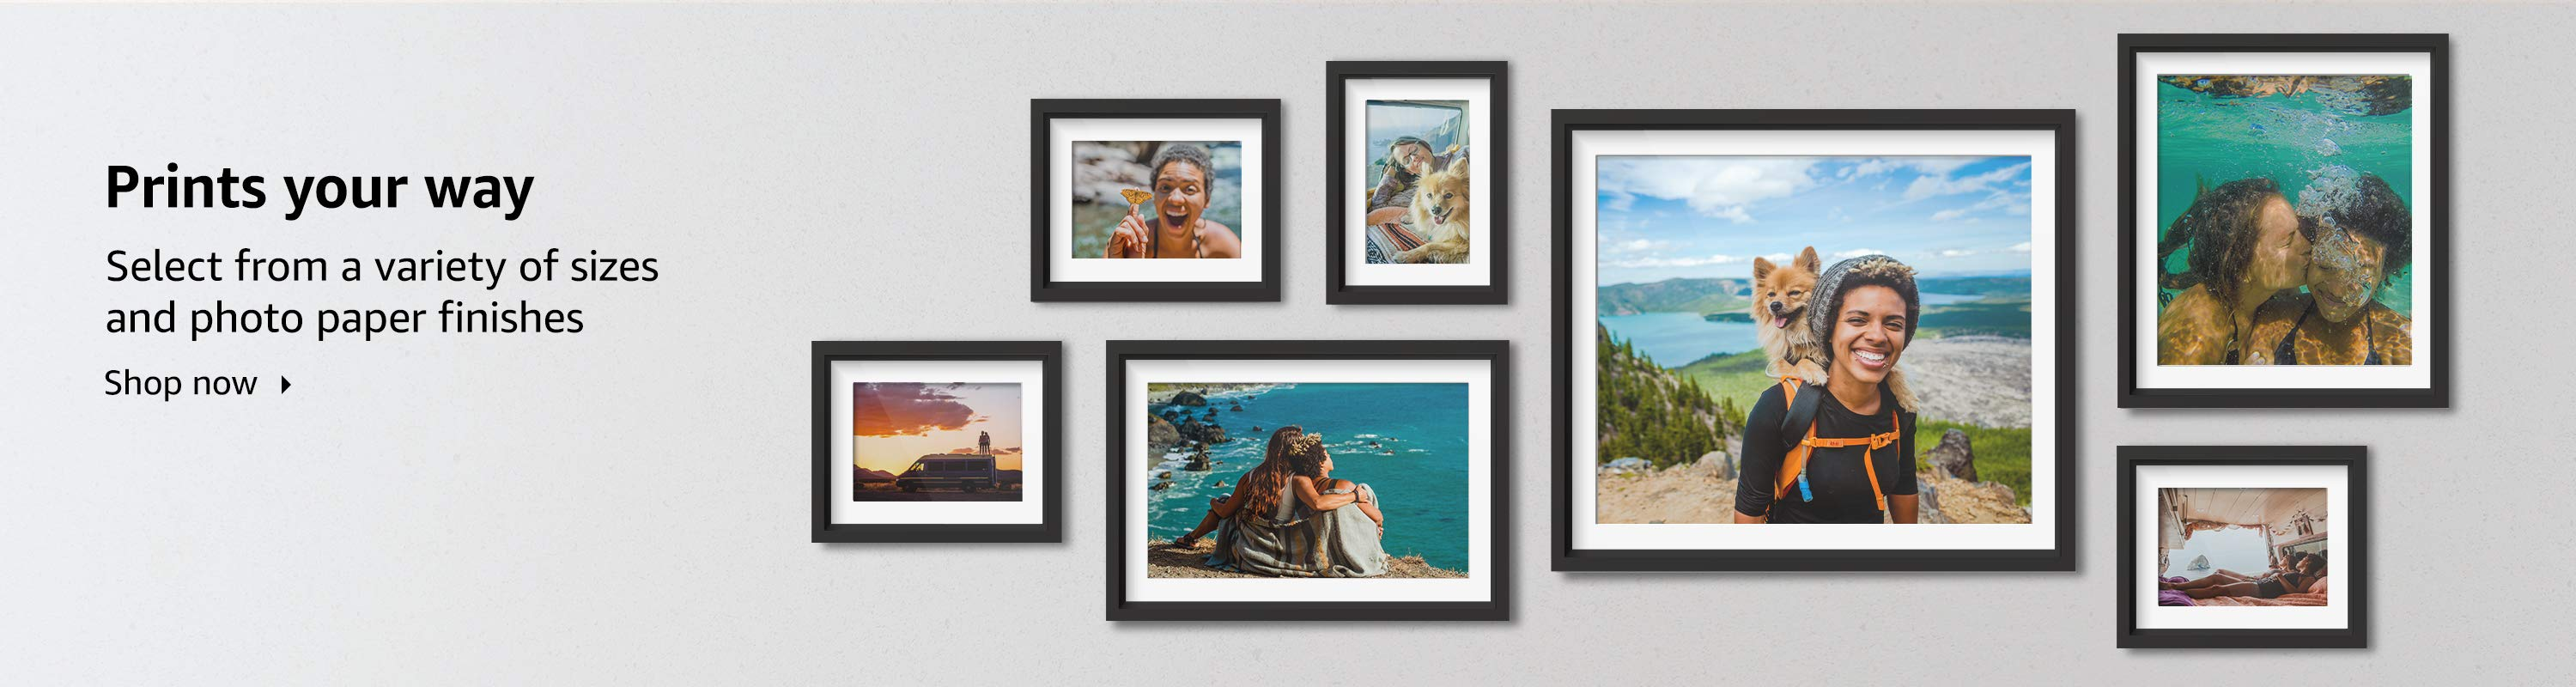 Prints your way - Select from a variety of sizes and photo paper finishes